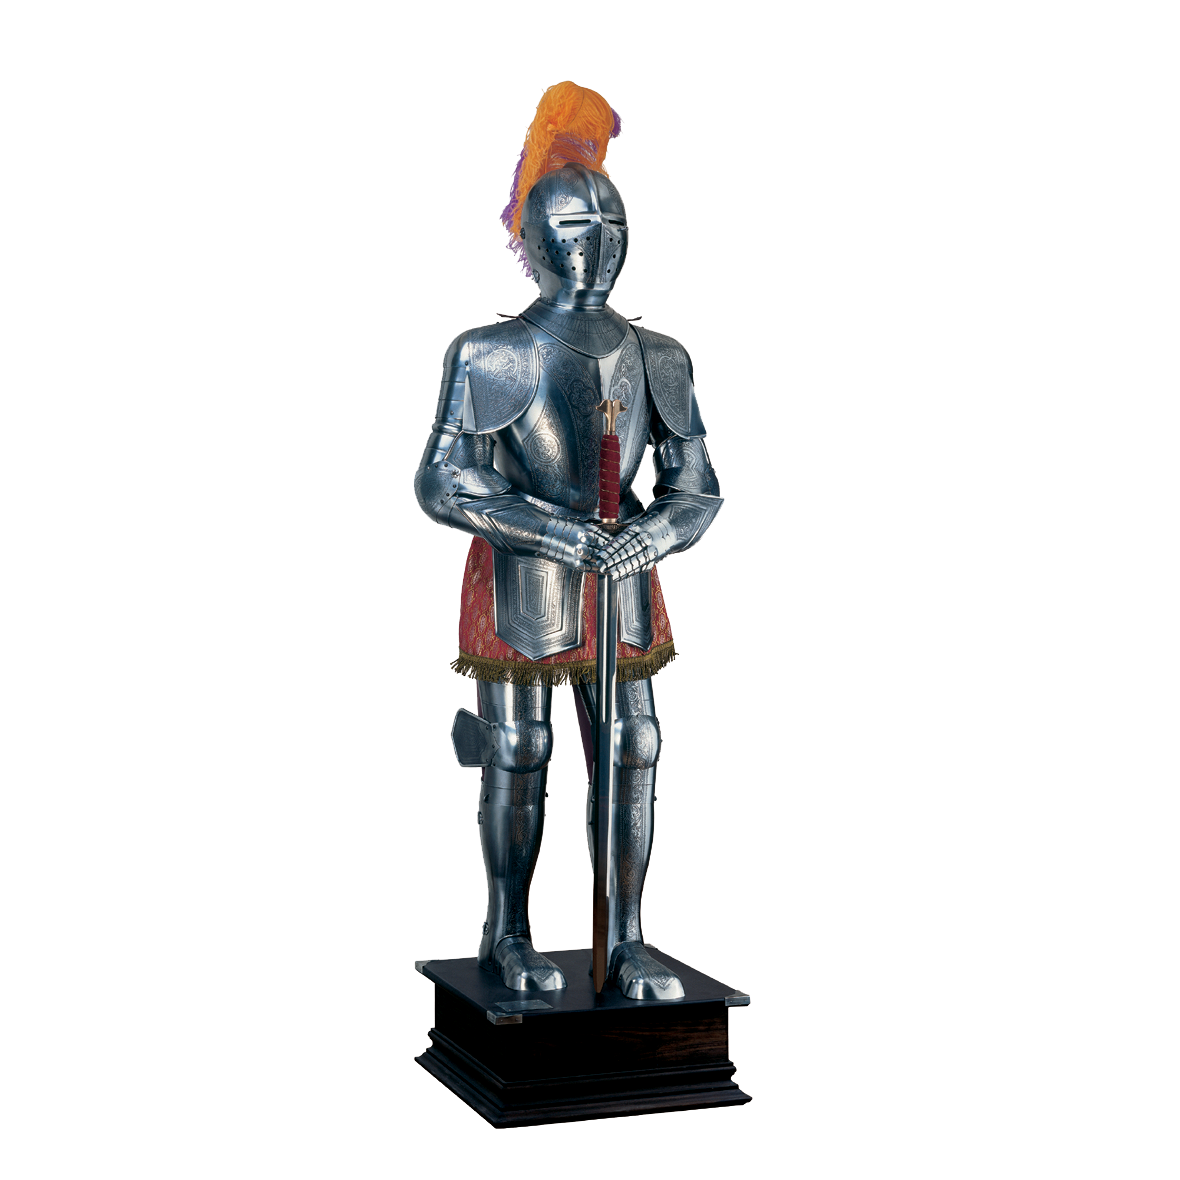 Knights clipart suit armour. Png images free download